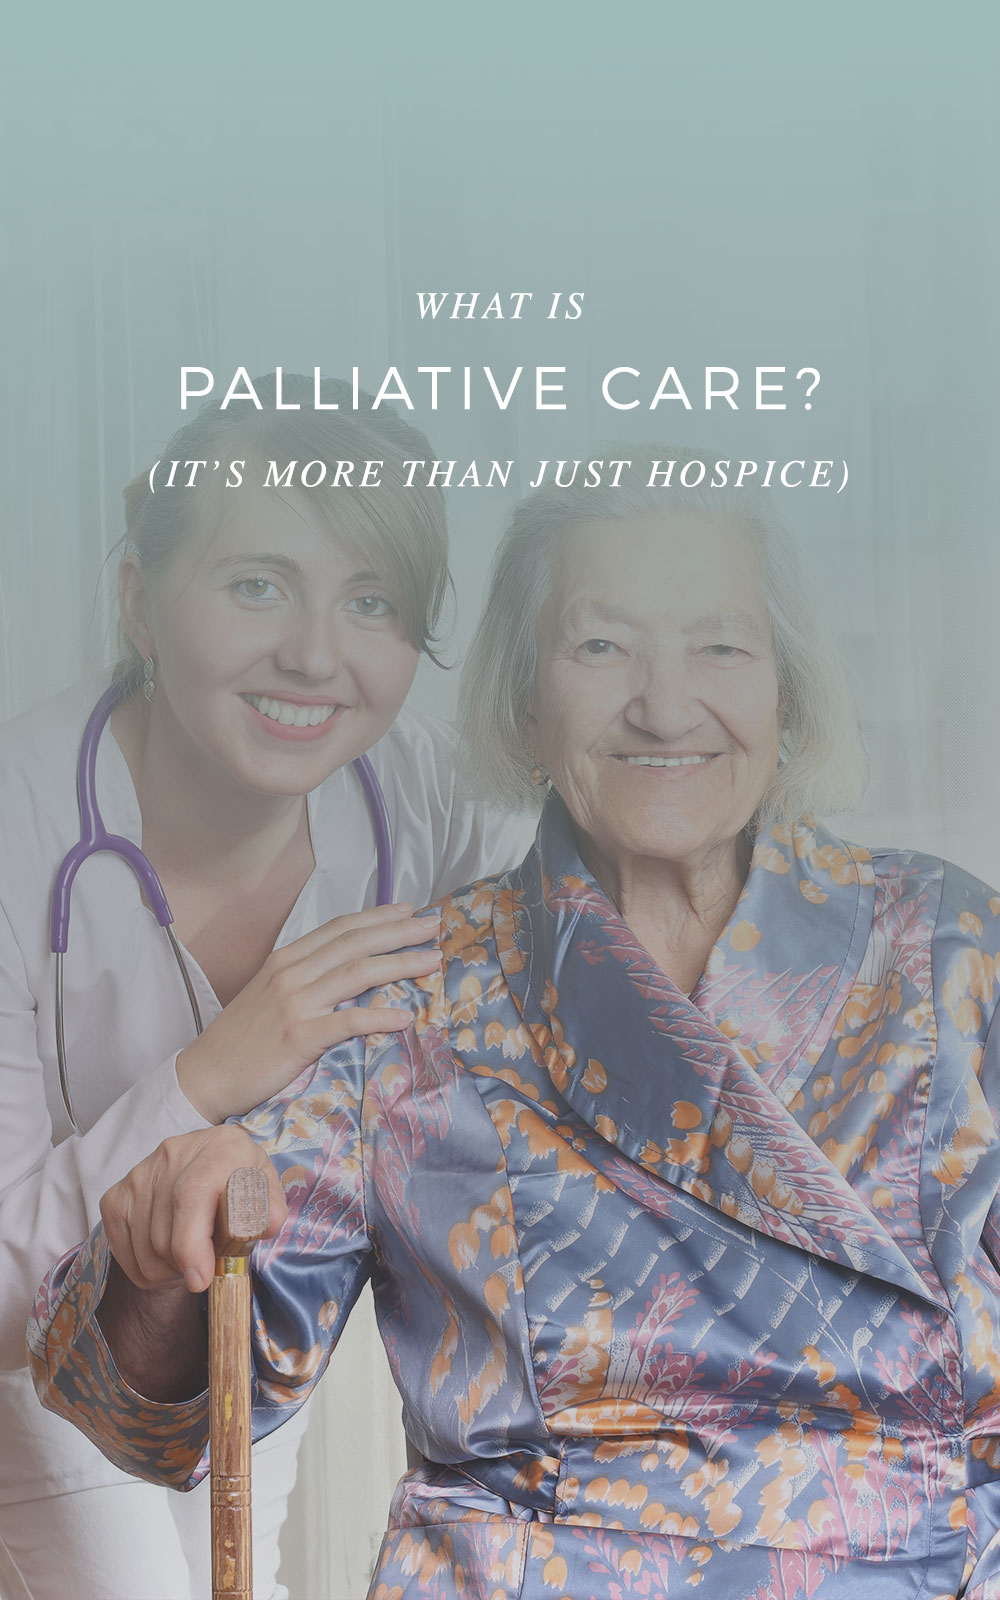 Have you heard of pallative care? It's more than just hospice and could be the answer for seniors with chronic illnesses to make sure they get attentive, compassionate, and comprehensive care.